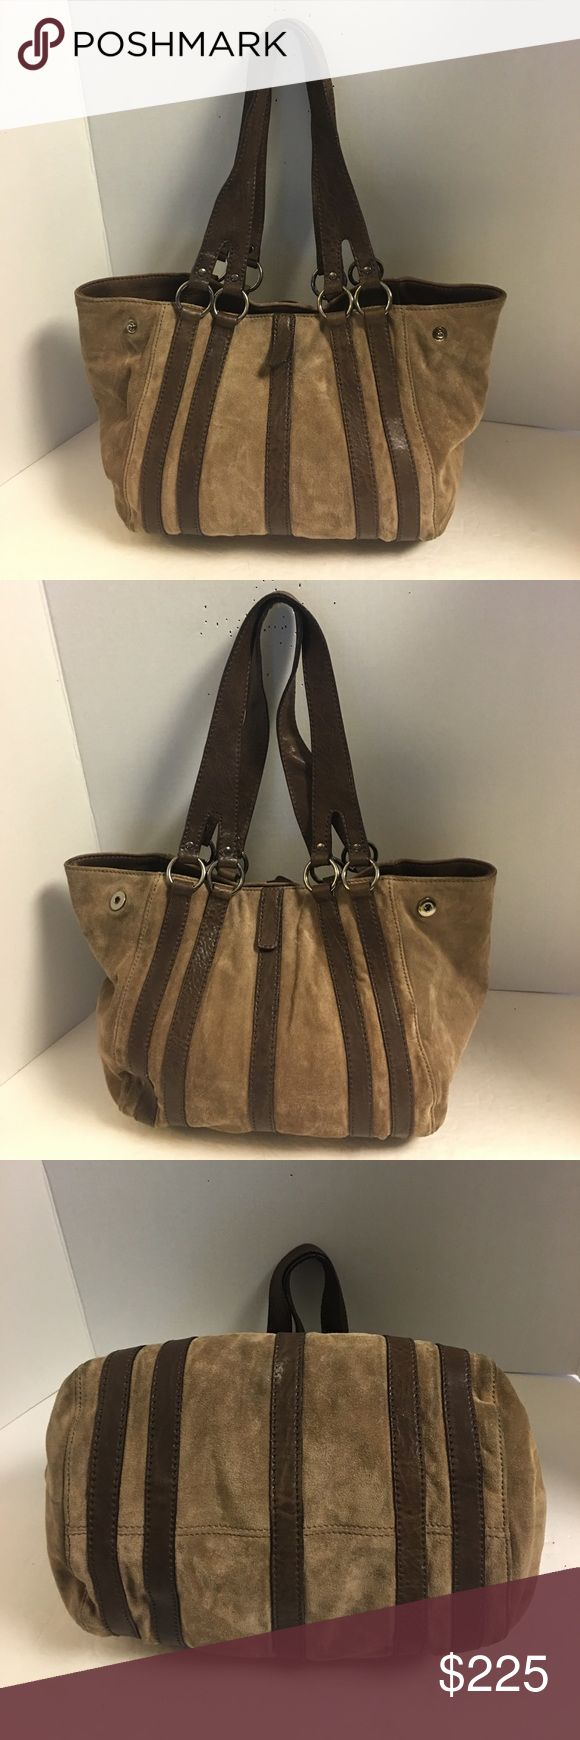 Miu miu Brown suede and leather tote shoulder bag Nice gently used miu miu Prada chocolate brown suede shoulder bag with brown leather trim and straps. 9 inch strap drop. Has two snaps on each side. Can be carrried with snaps open or closed. I have photographed both ways. Magnetic snap closure. Inside lining is dark brown with zipper pocket inside. Very clean. Just a few light spots on the exterior. Very good condition. See photos. Miu Miu Bags Shoulder Bags